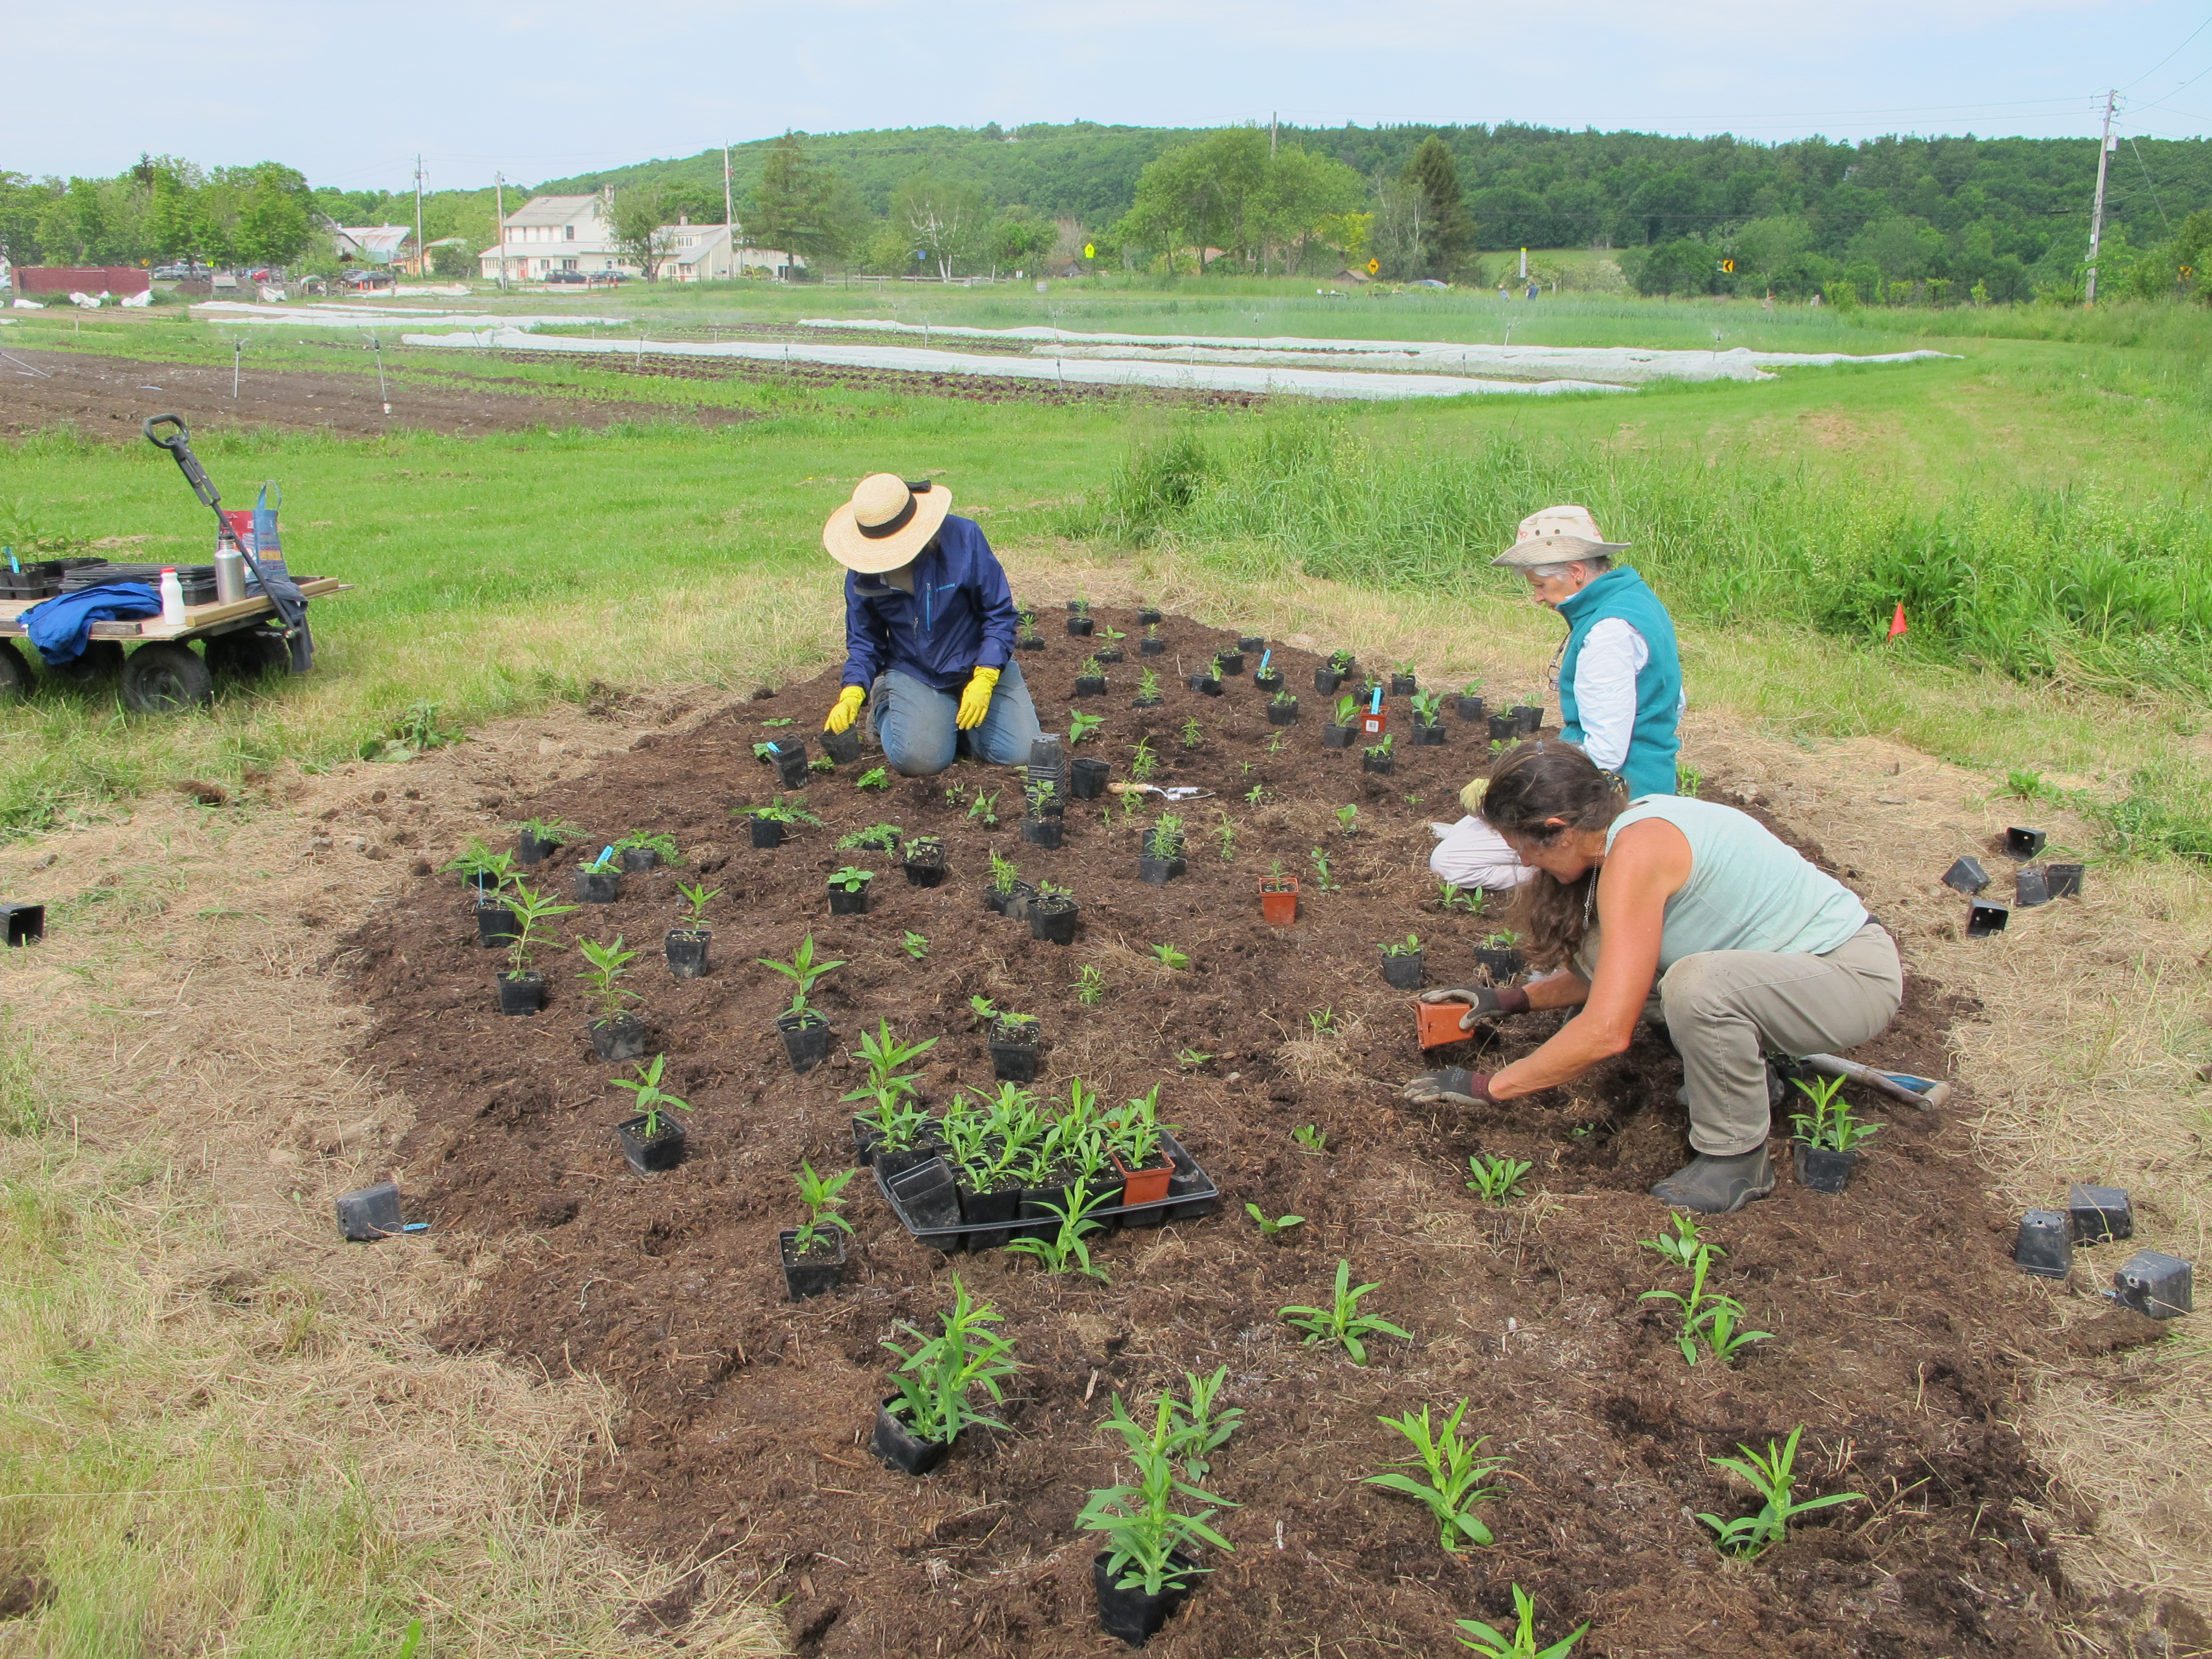 people kneeling in the soil planting small potted plants into a freshly mulched area of a cropfield